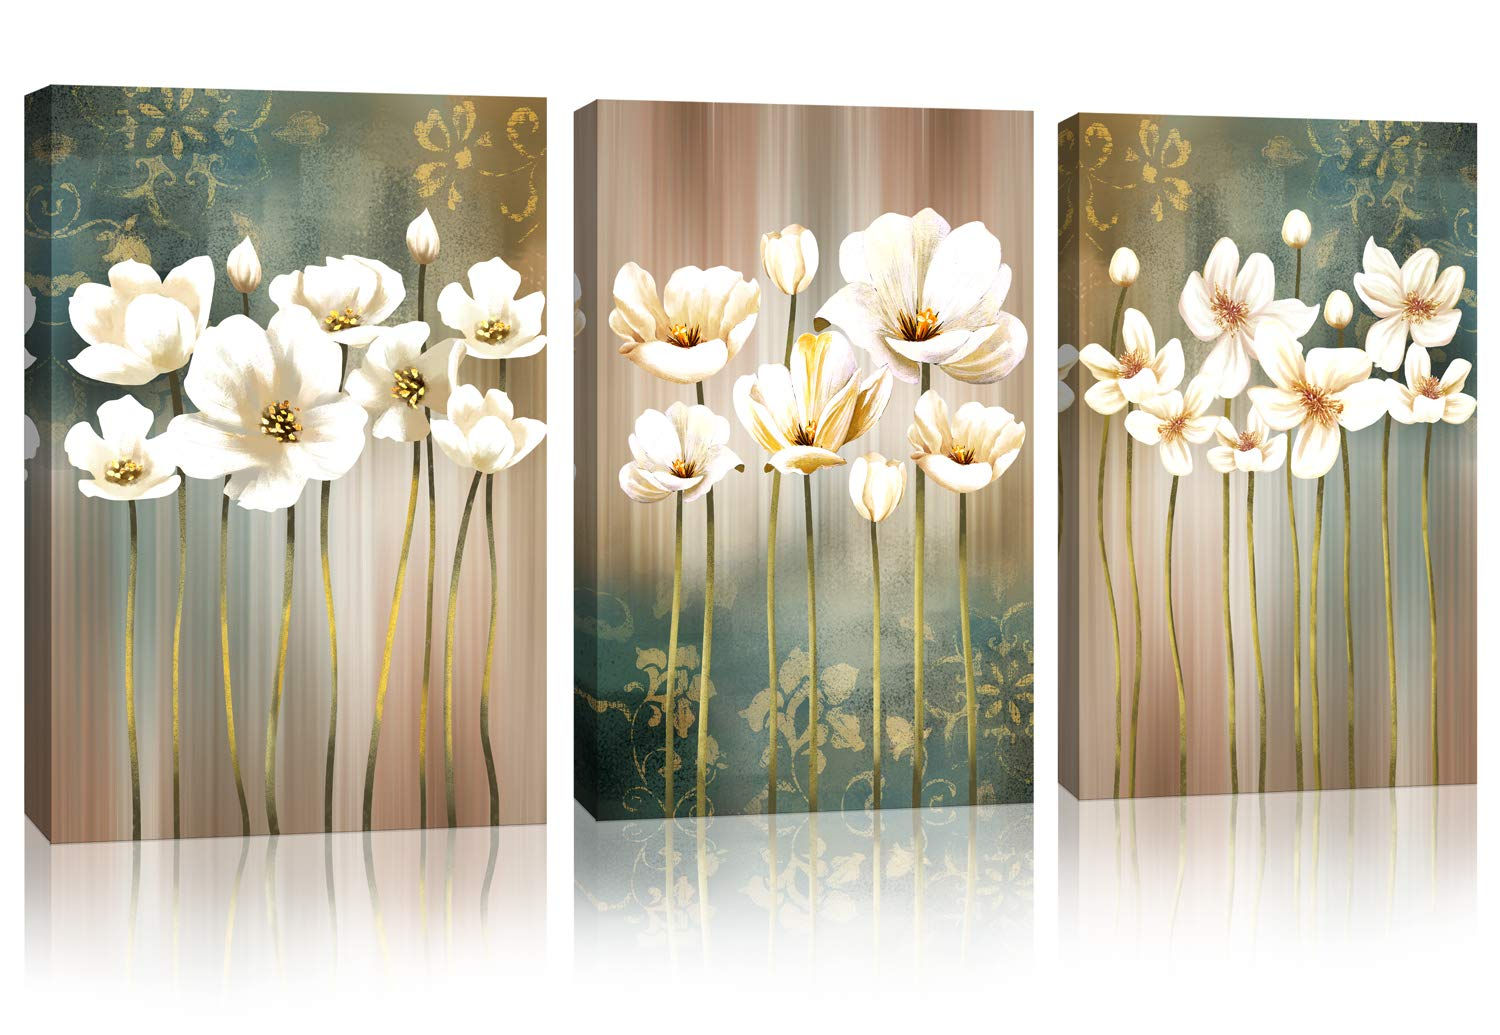 Flower Modern Artwork Canvas Wall Art Bathroom Wall Decor White Blossom Brown Green Abstract Flower Background Canvas Painting Prints Picture Bedroom Kitchen Home Decoration Size 12 X 16 X 3 Pieces Amazon Com Au Home